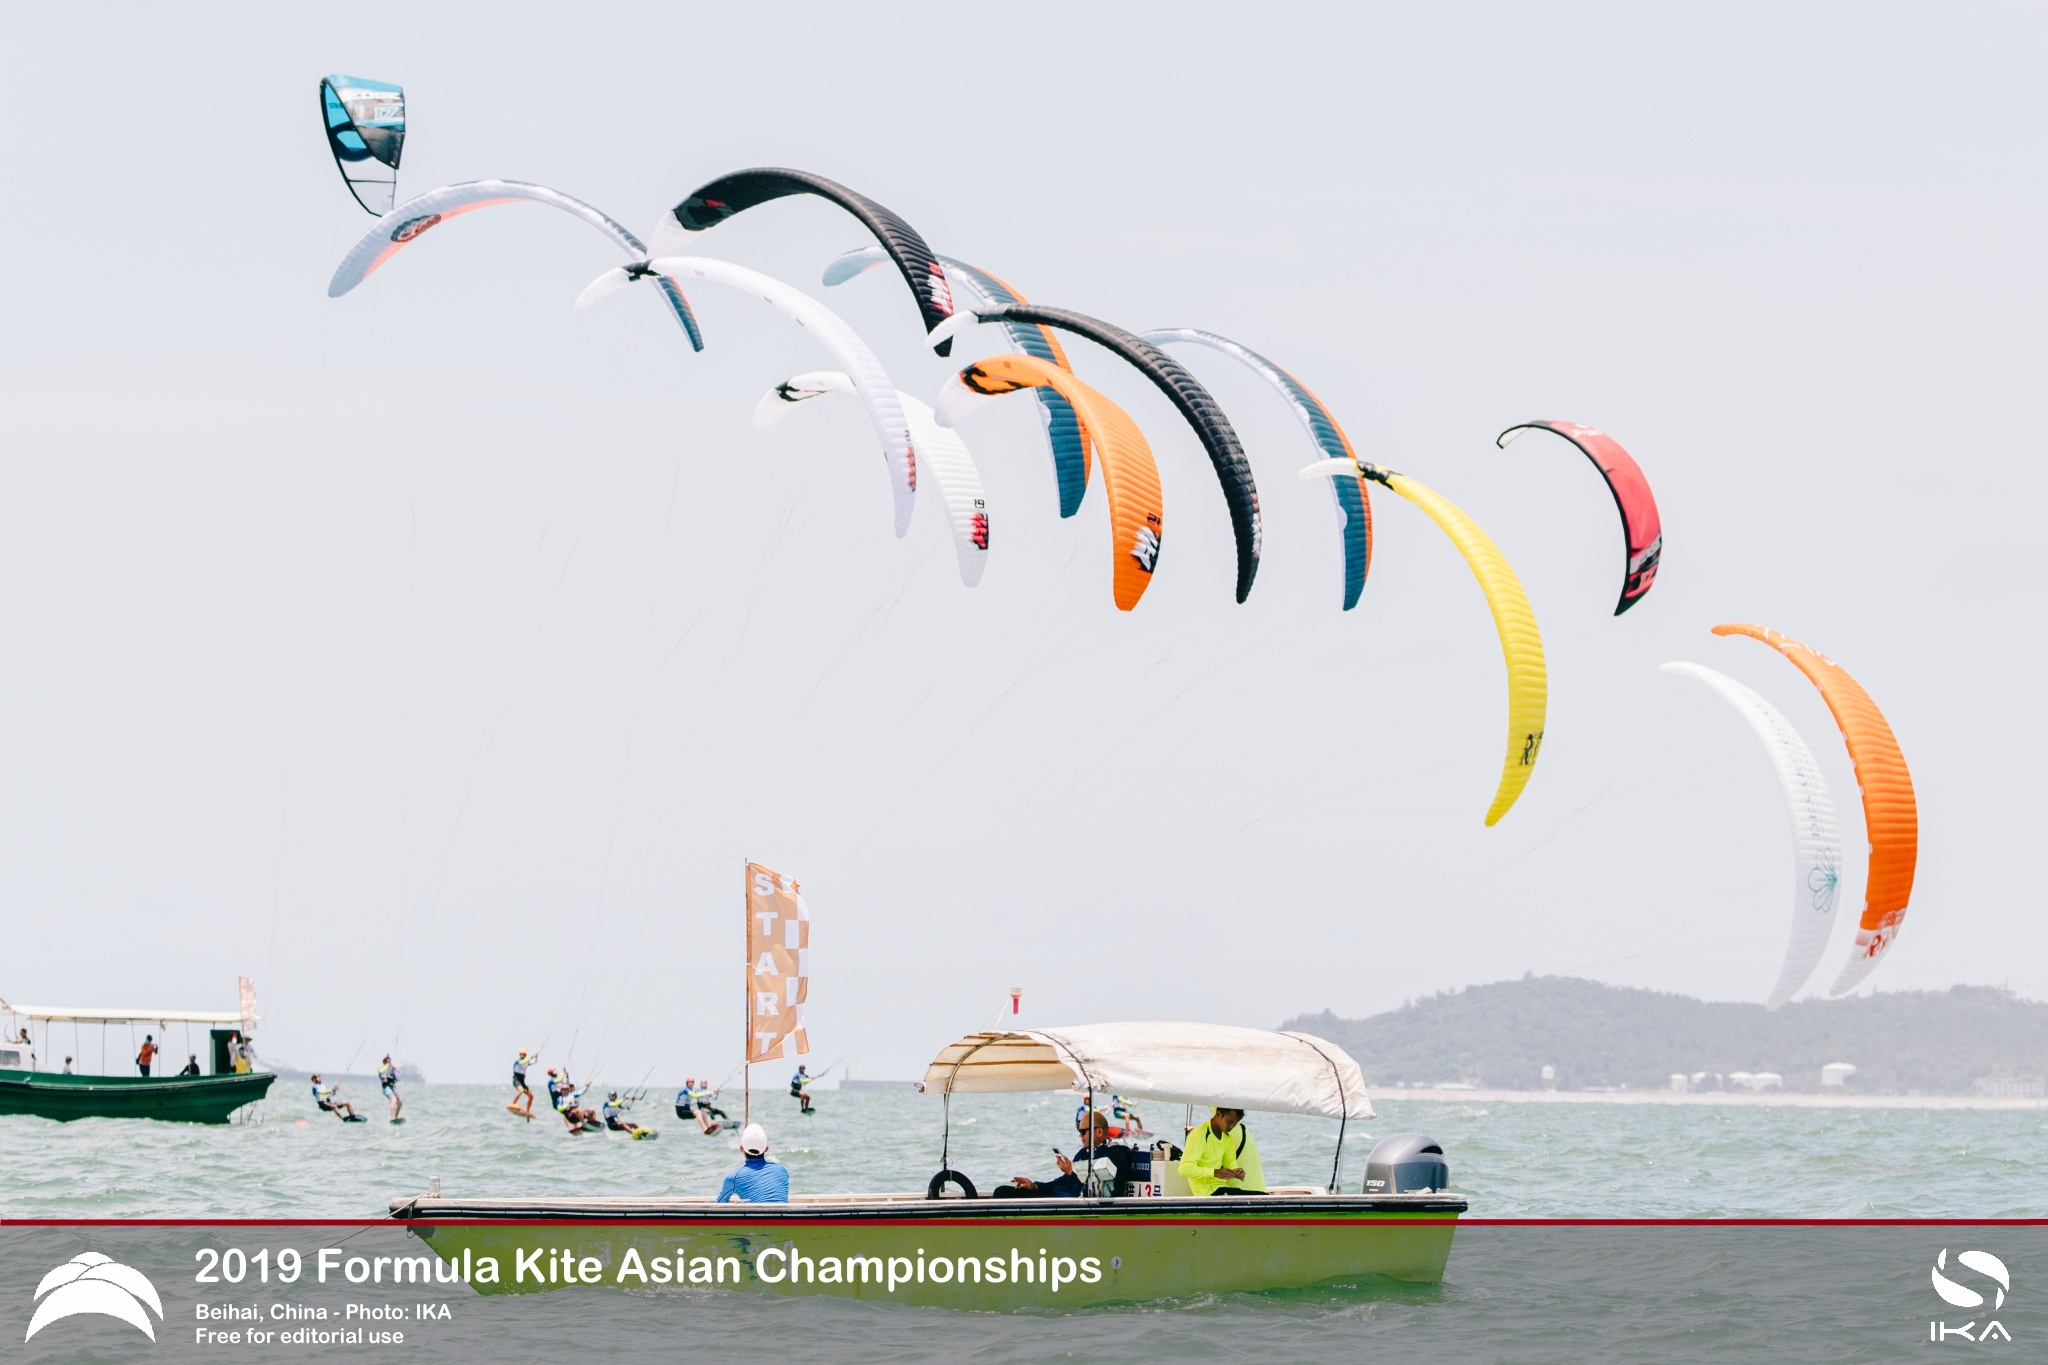 Drama at Formula Kite Asians as Leading Women Demoted for Errors